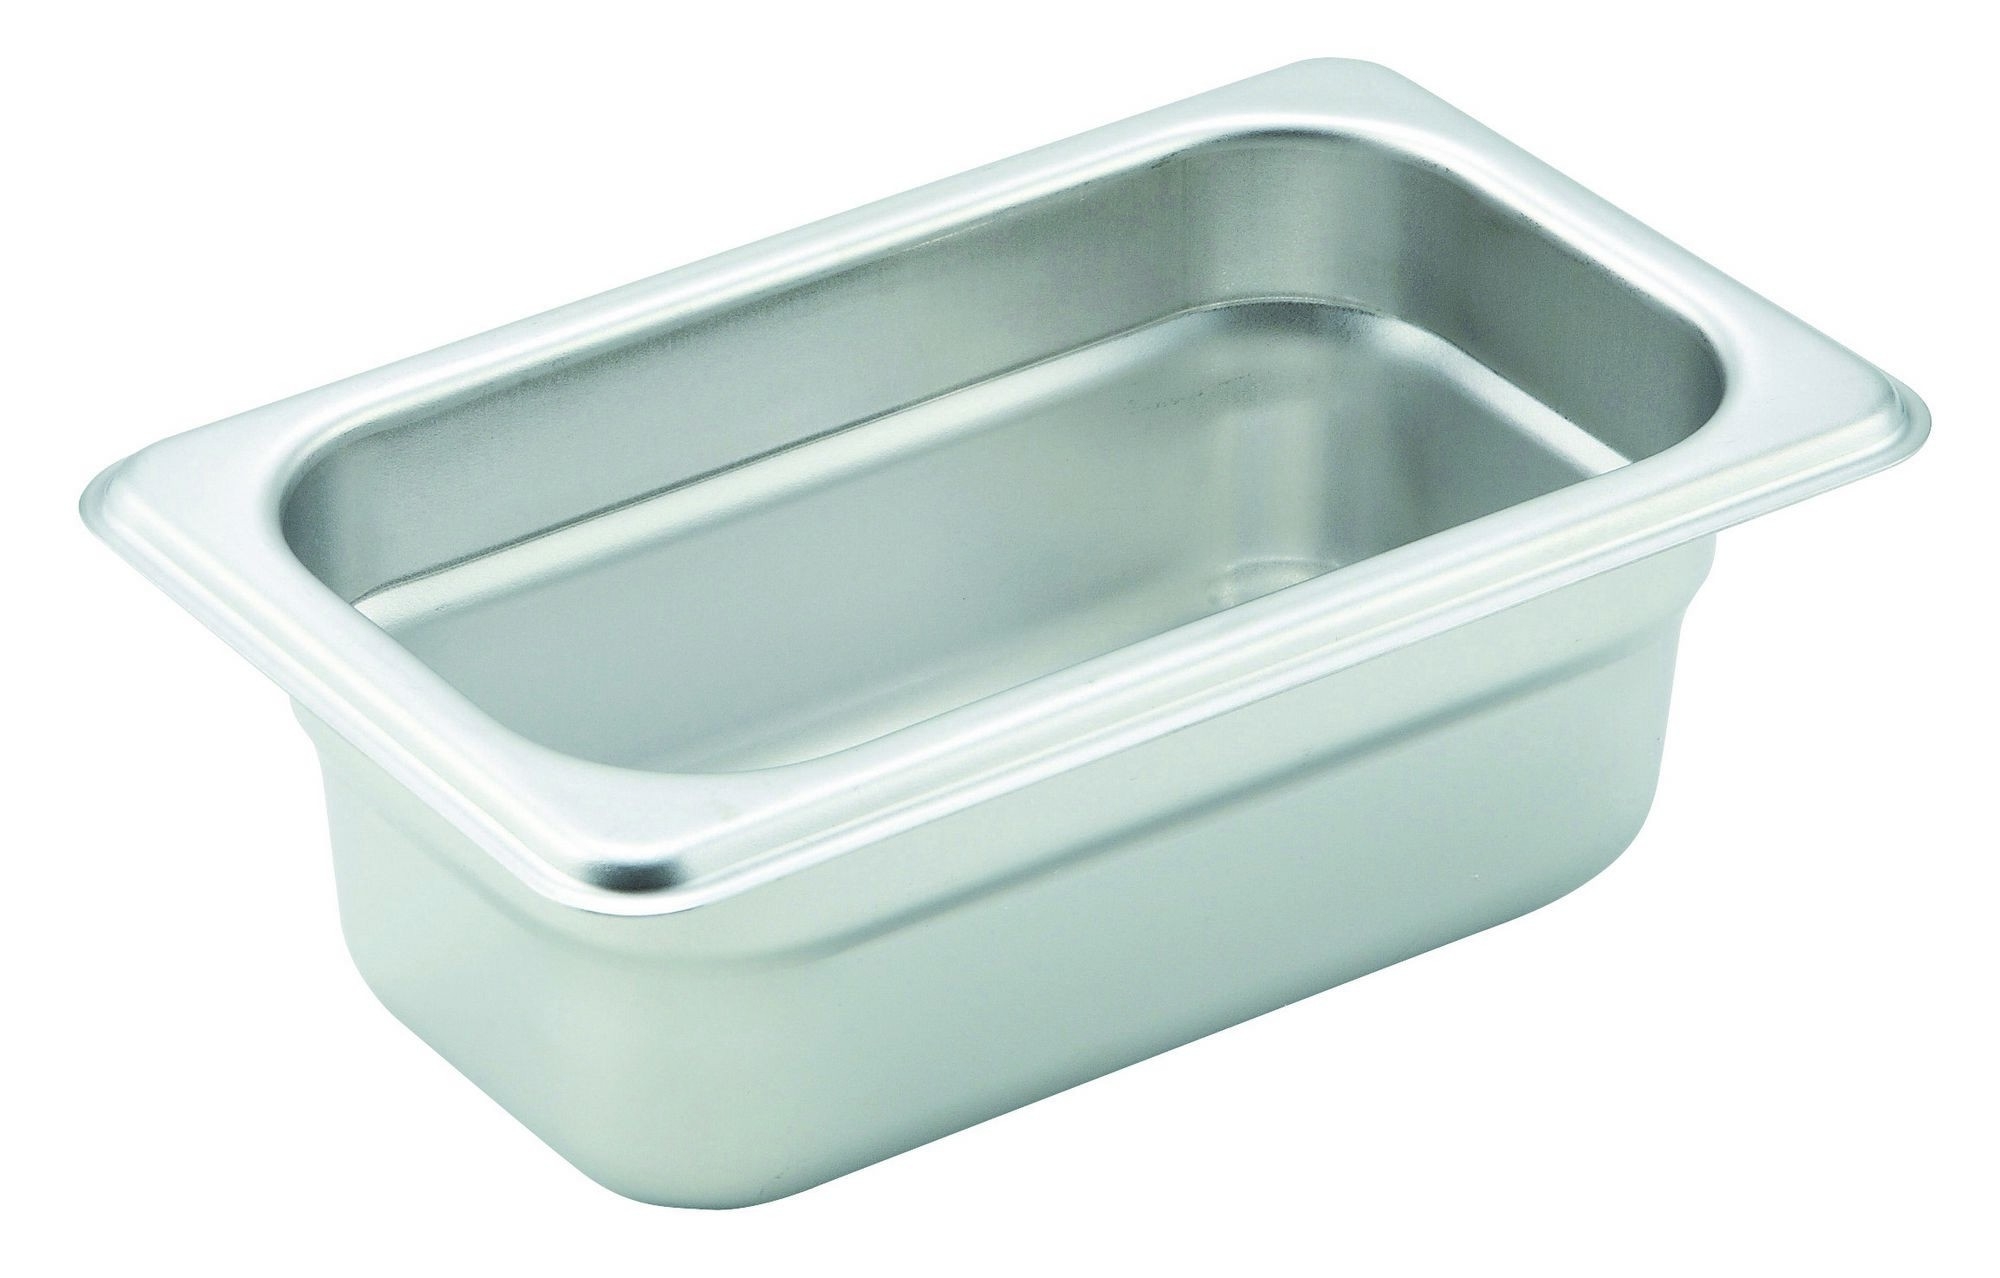 "Winco Spjh-902 1/9 Size Anti-Jam 22 Gauge Steam Table Pan 2-1/2"" Deep"